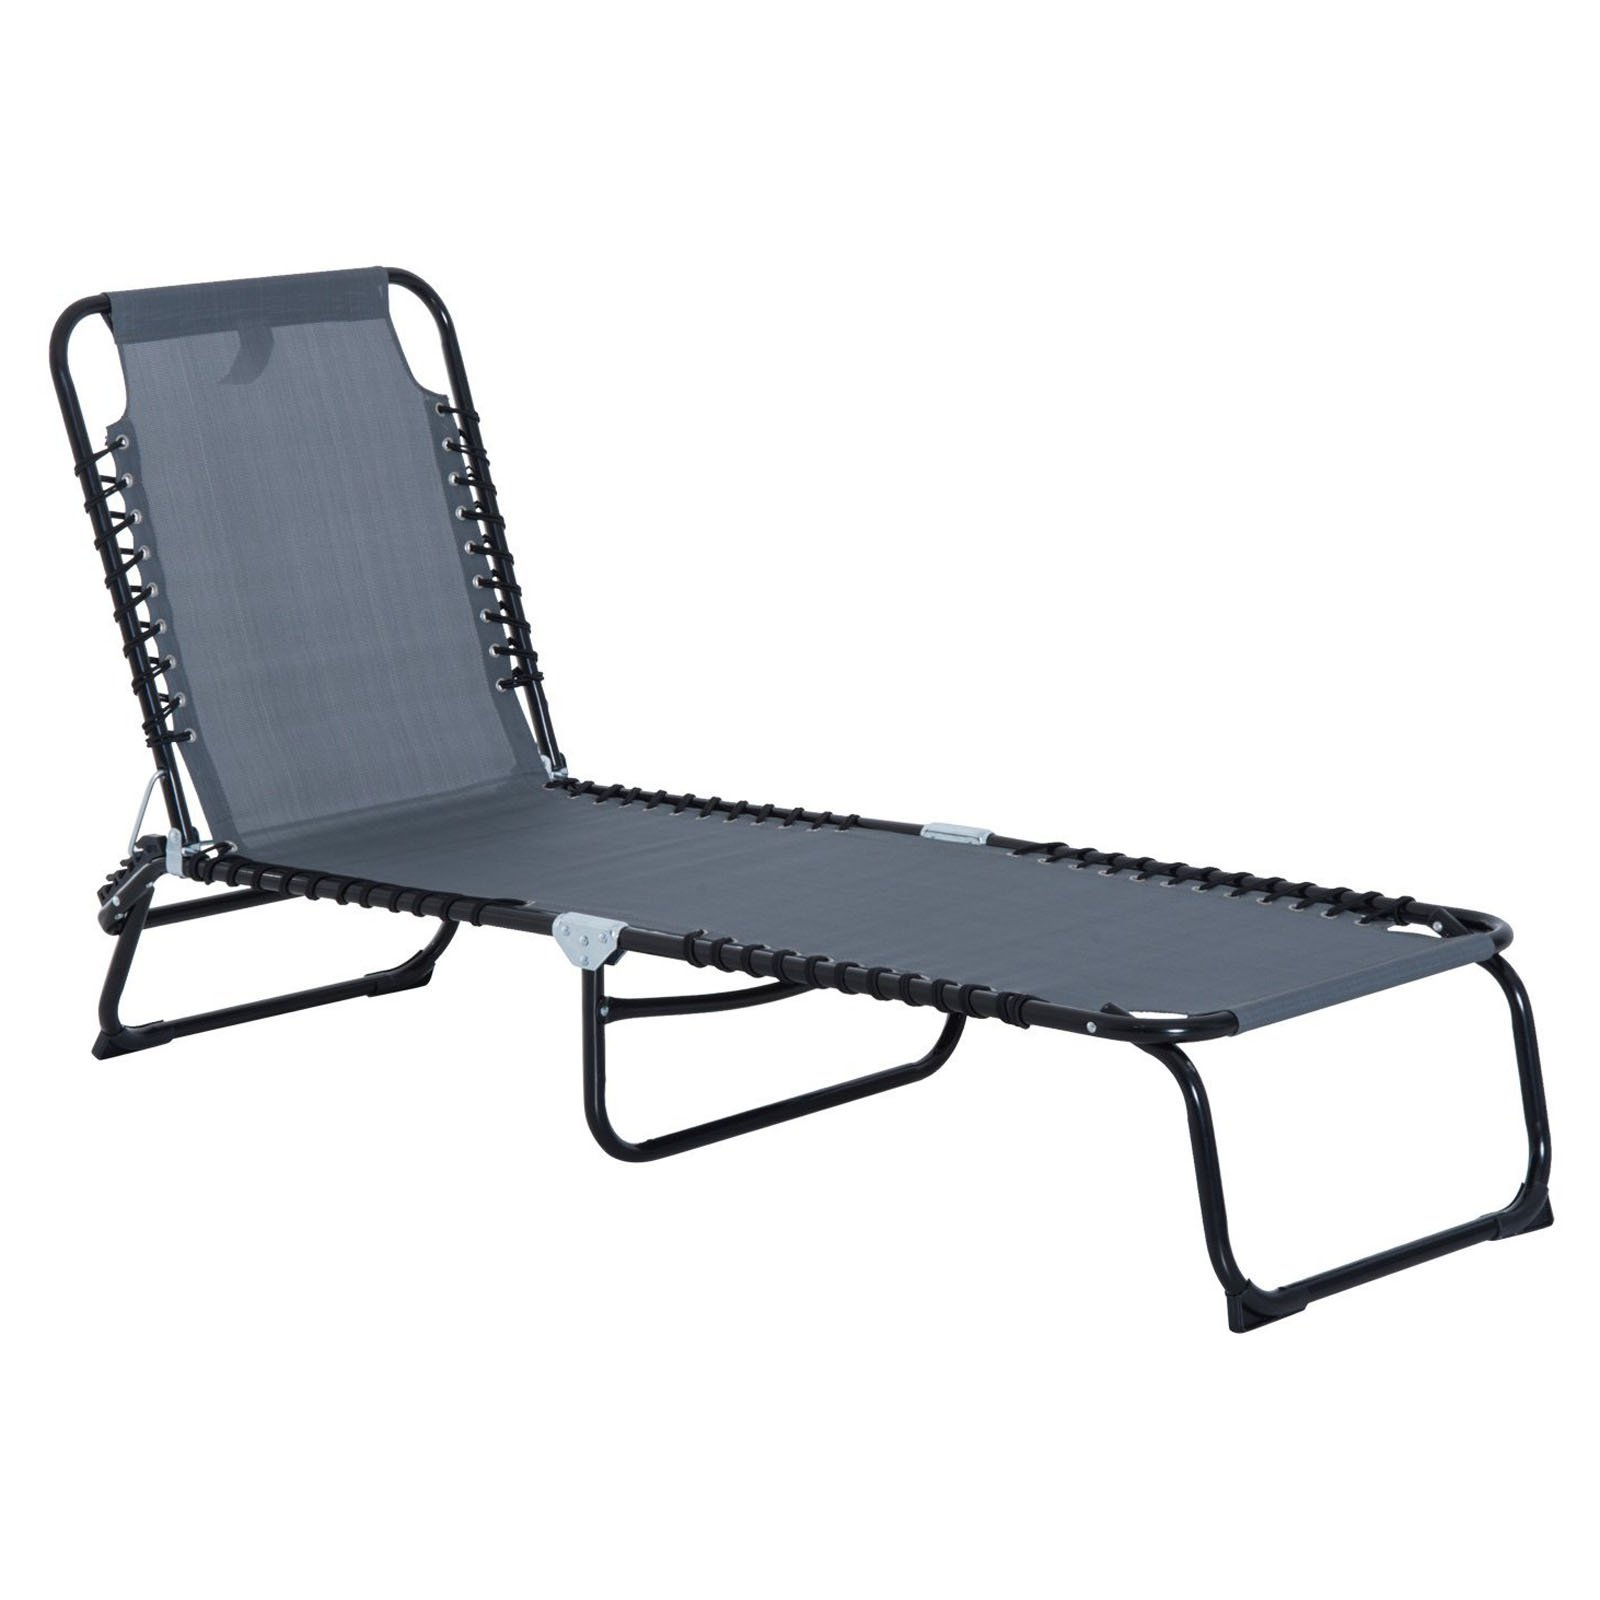 Outsunny Portable 3 Position Reclining Folding Beach Chaise Lounge Chair